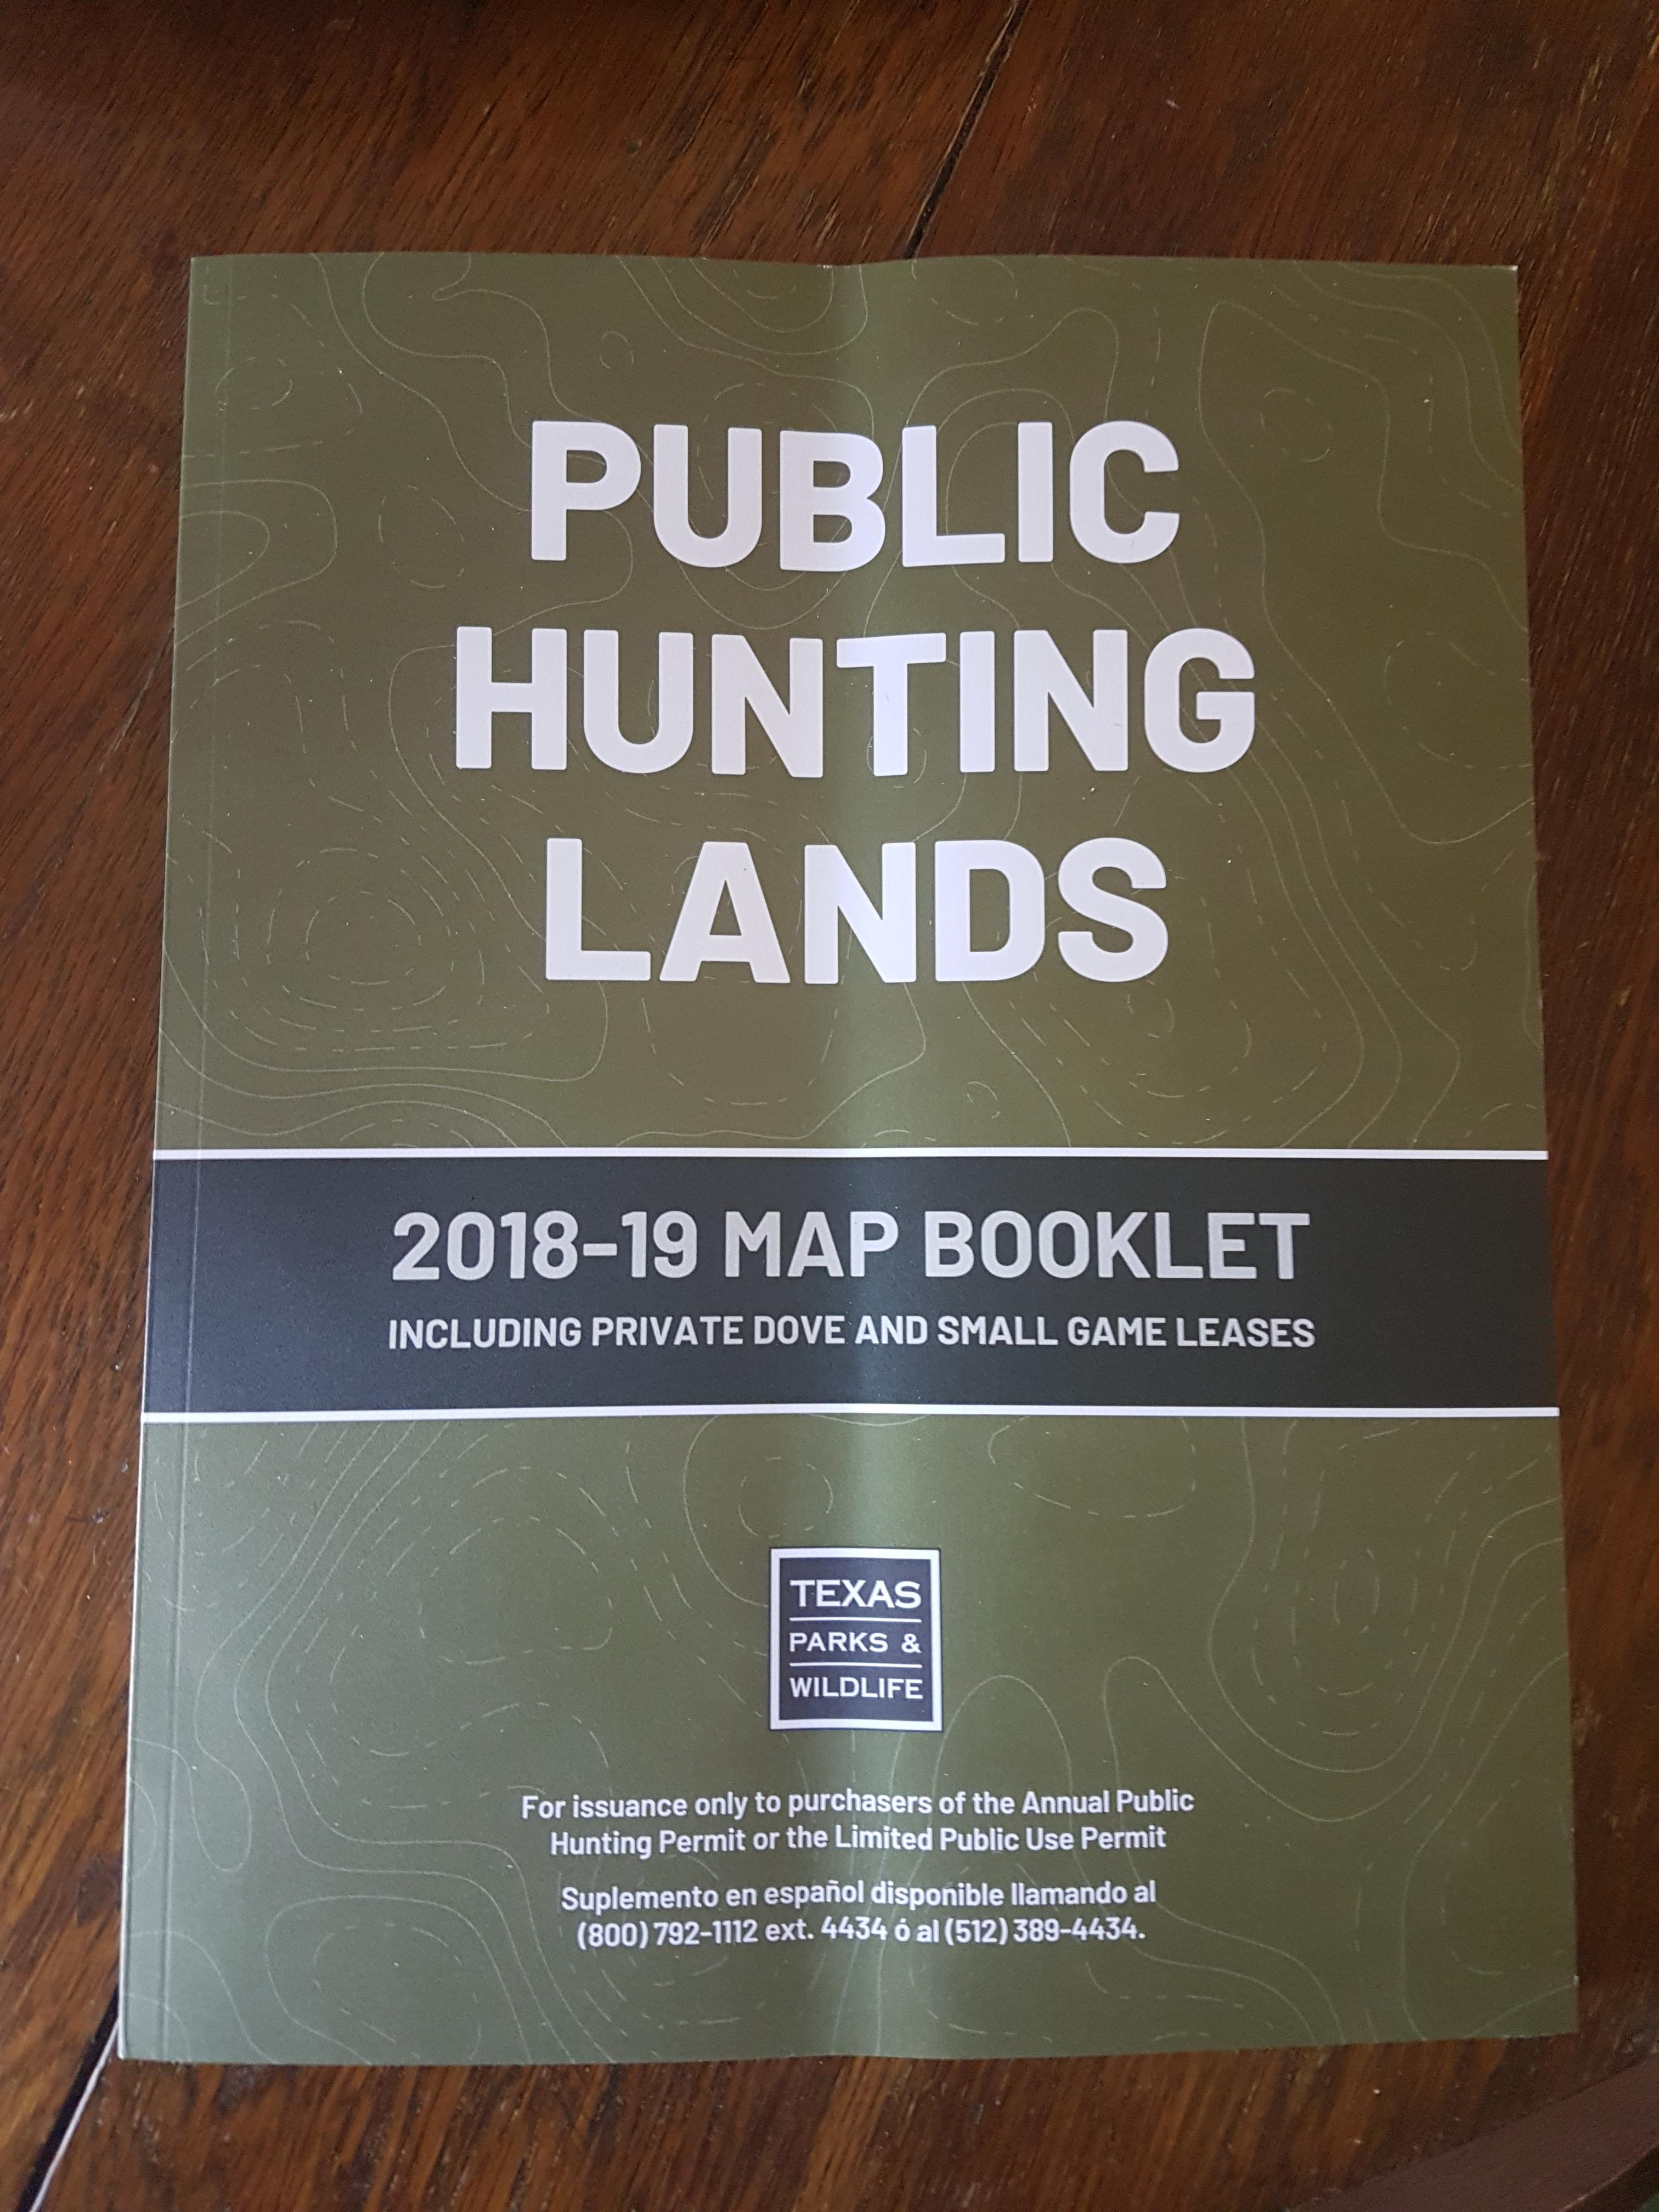 Tis (Almost) The Season - Texas Public Hunting Map Booklet